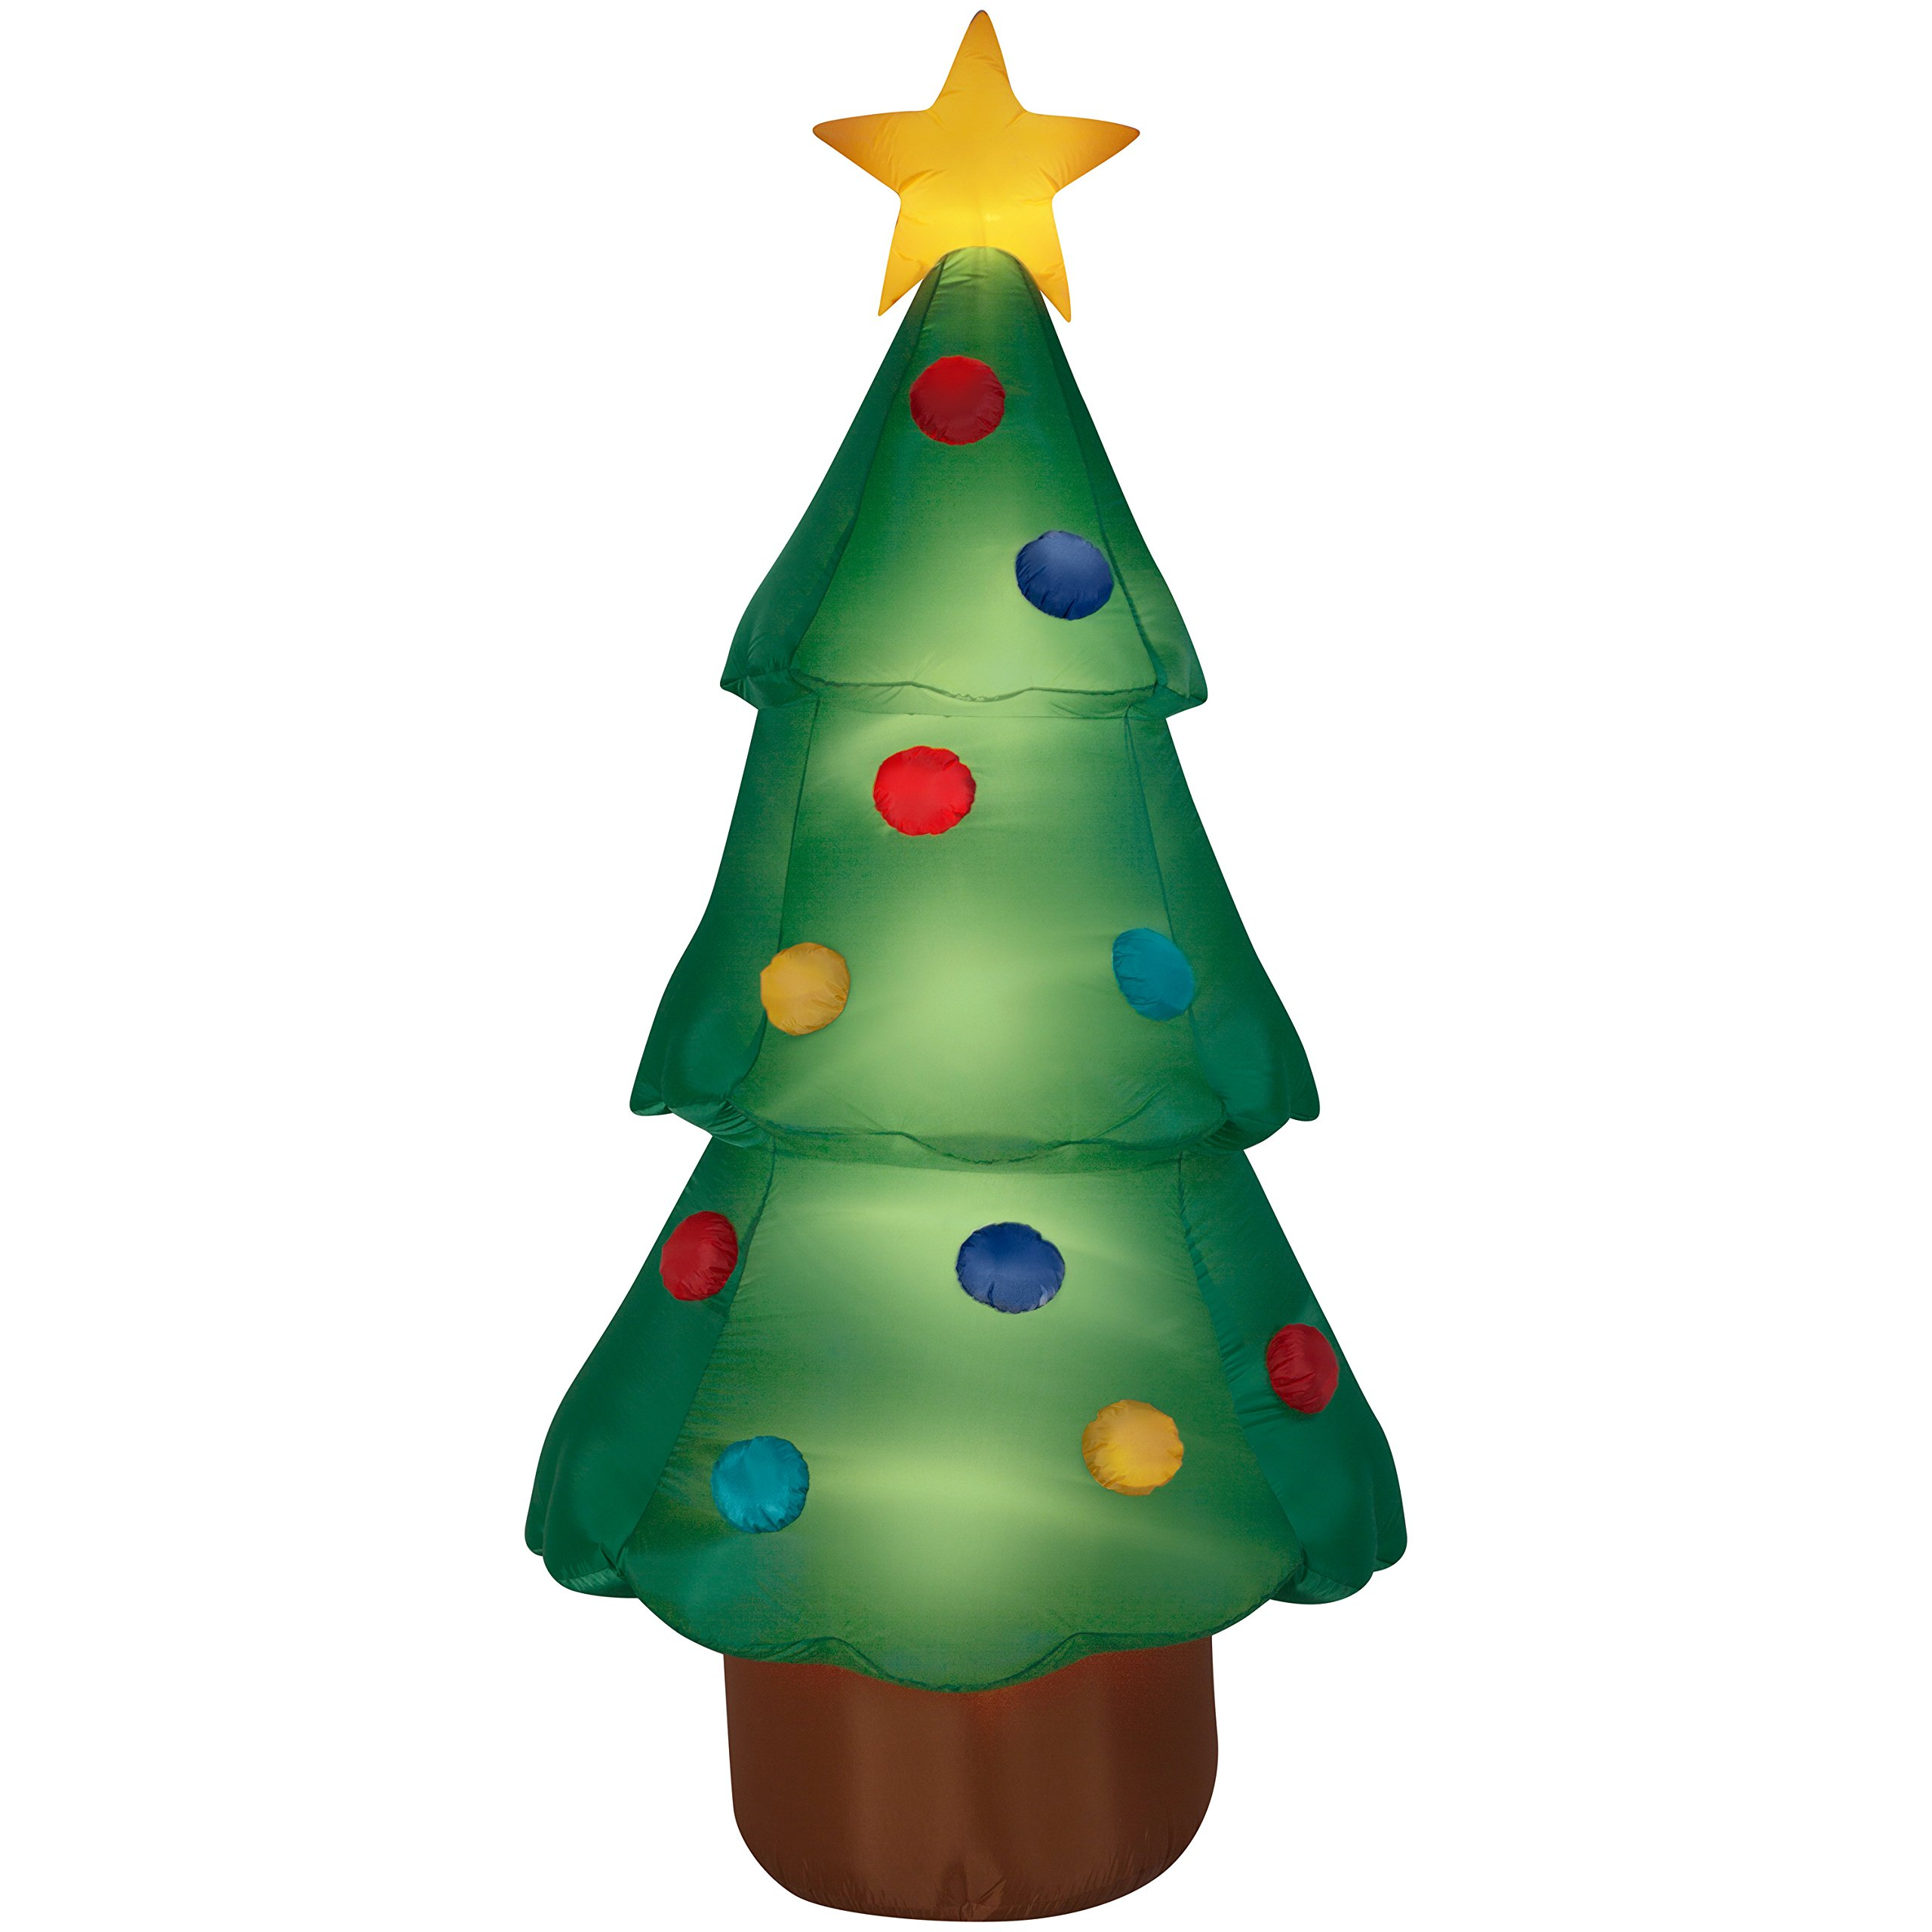 Airblown Inflatable-Christmas Tree Giant 10ft tall by Gemmy Industries